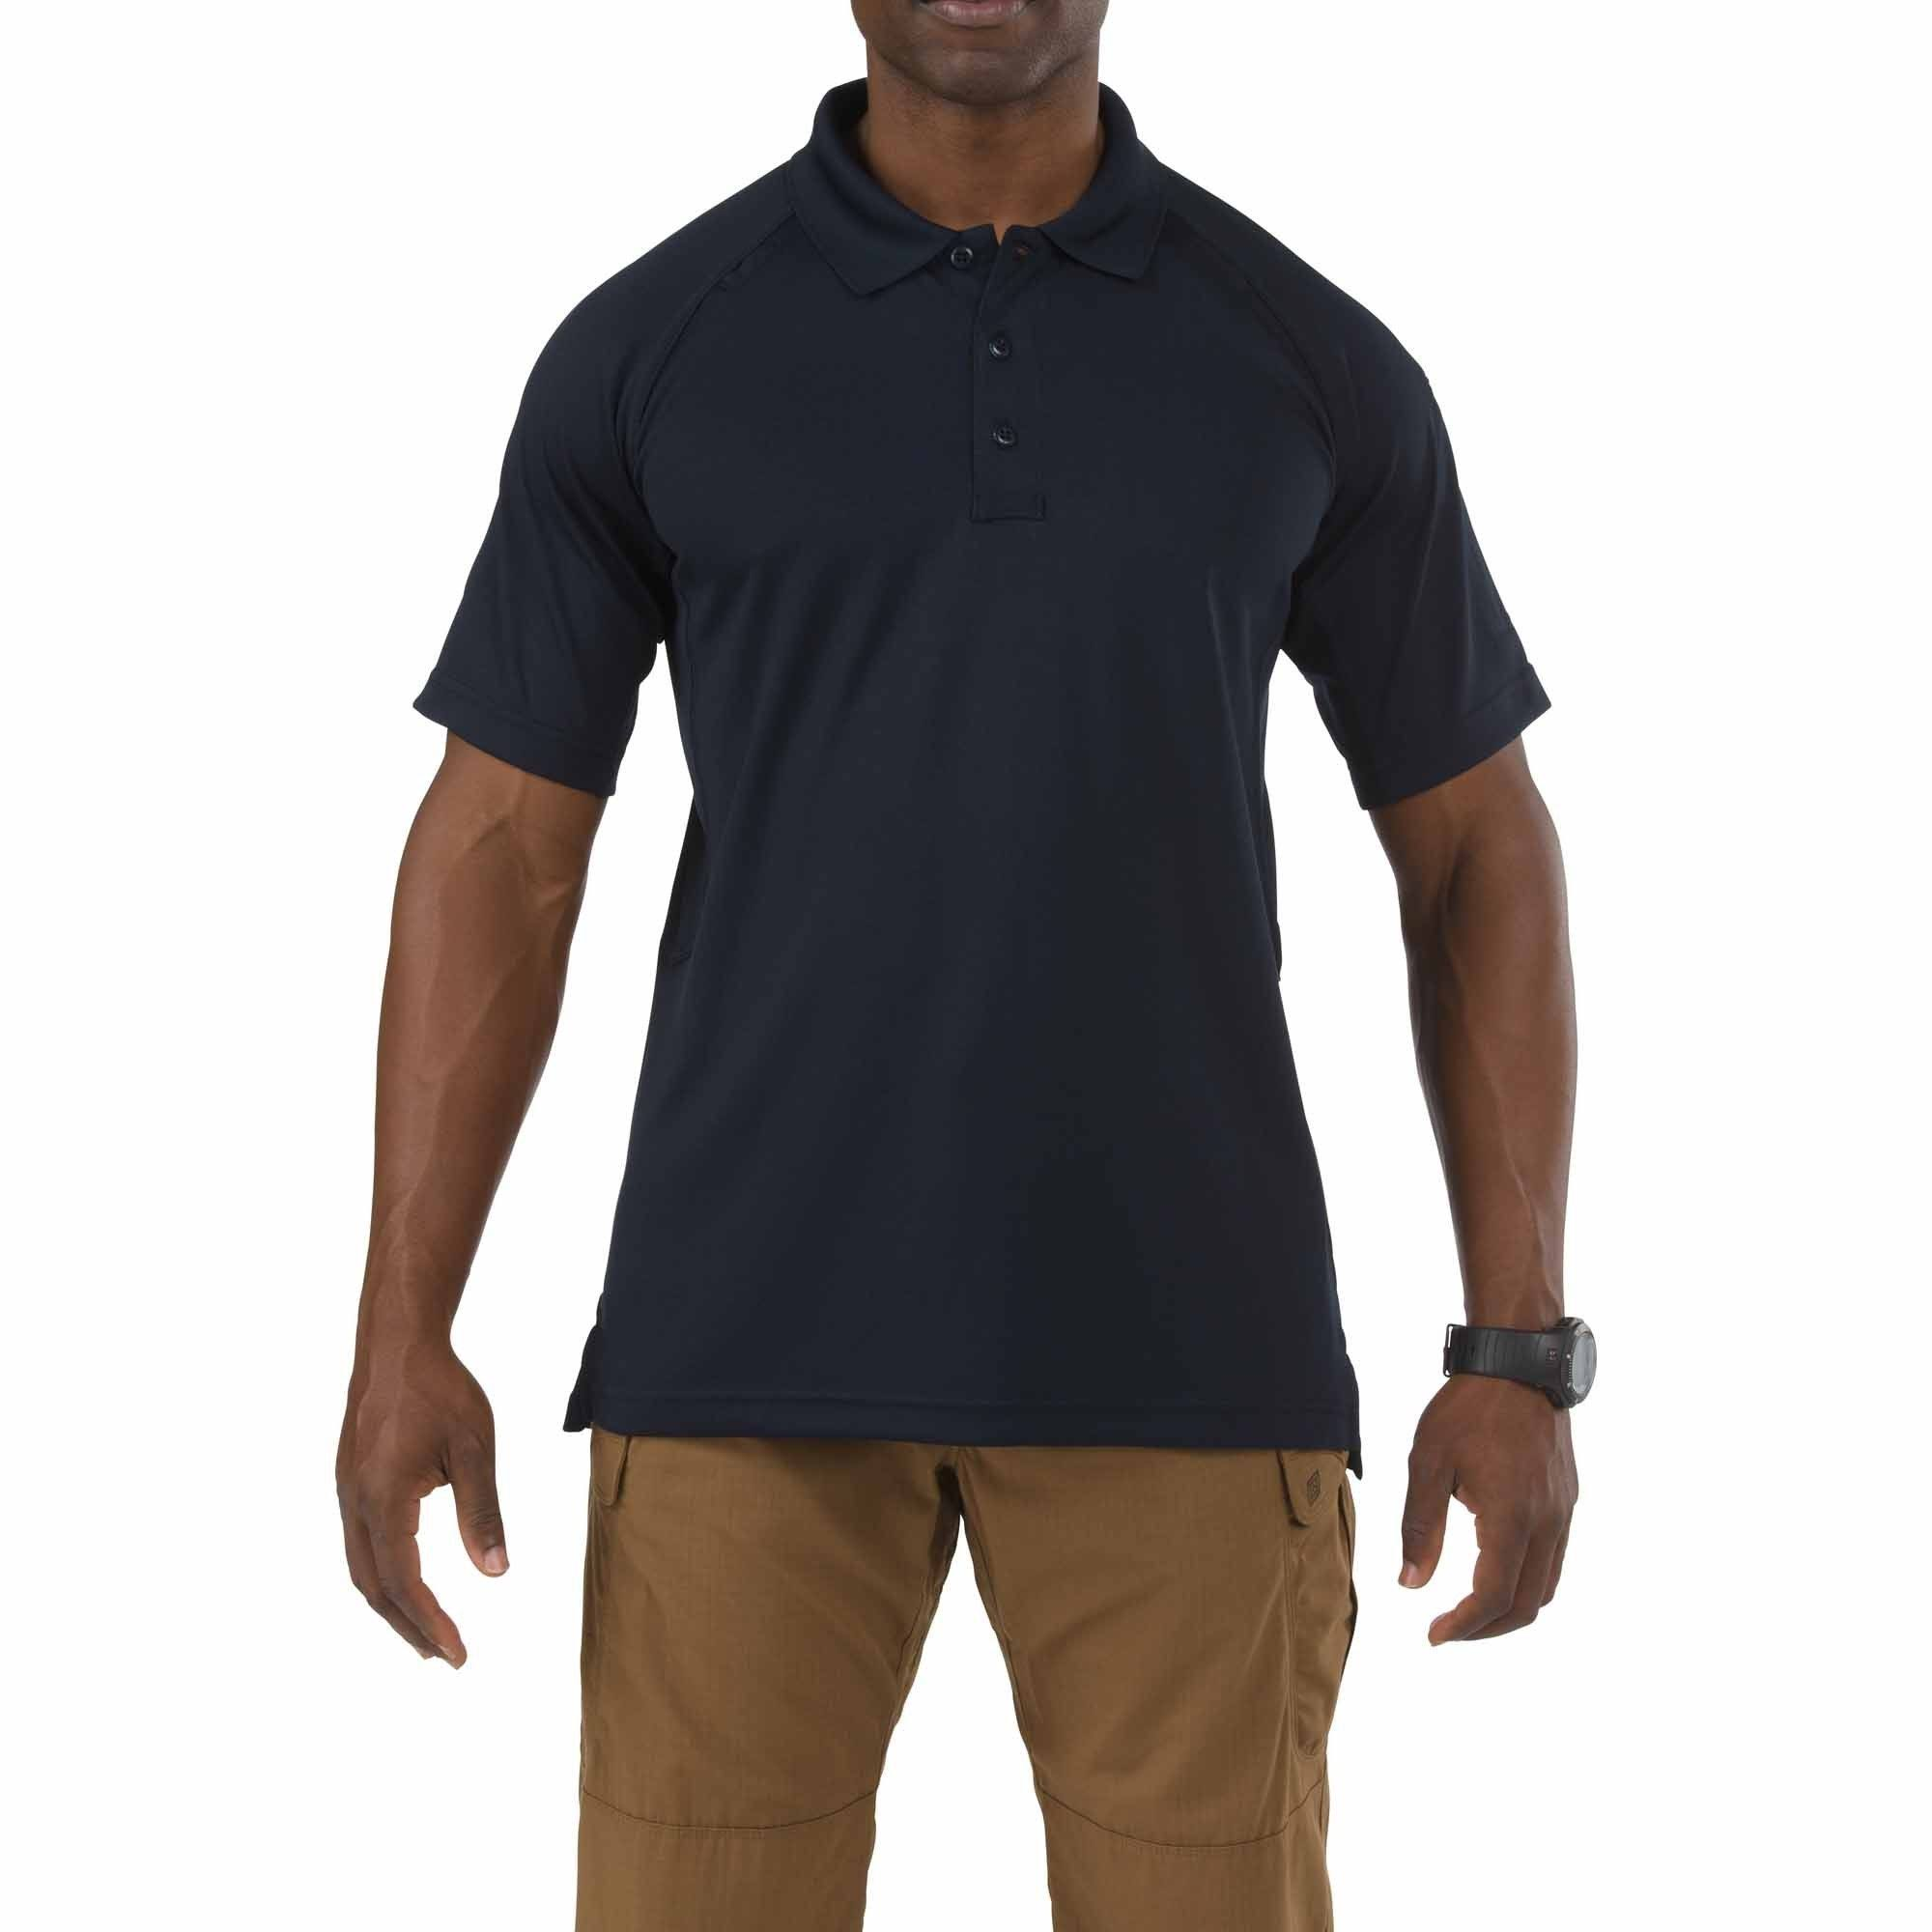 5.11 Performance Short Sleeve Polo - Navy